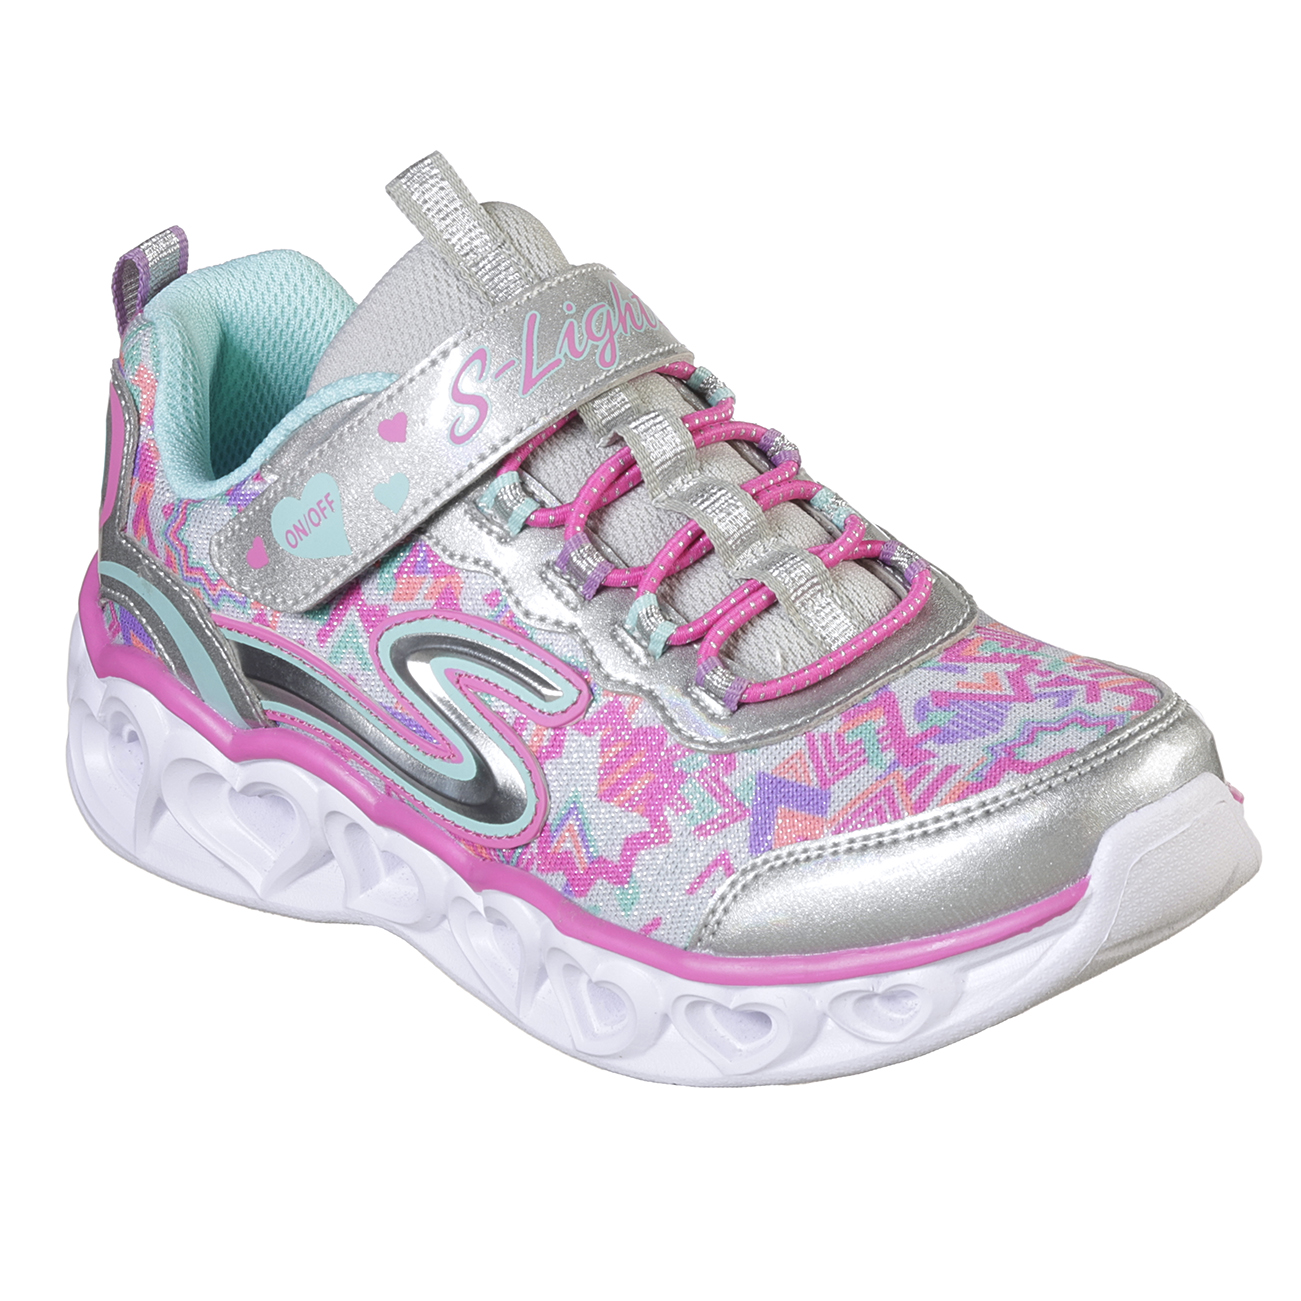 Kids Girls Skechers Heart Lights